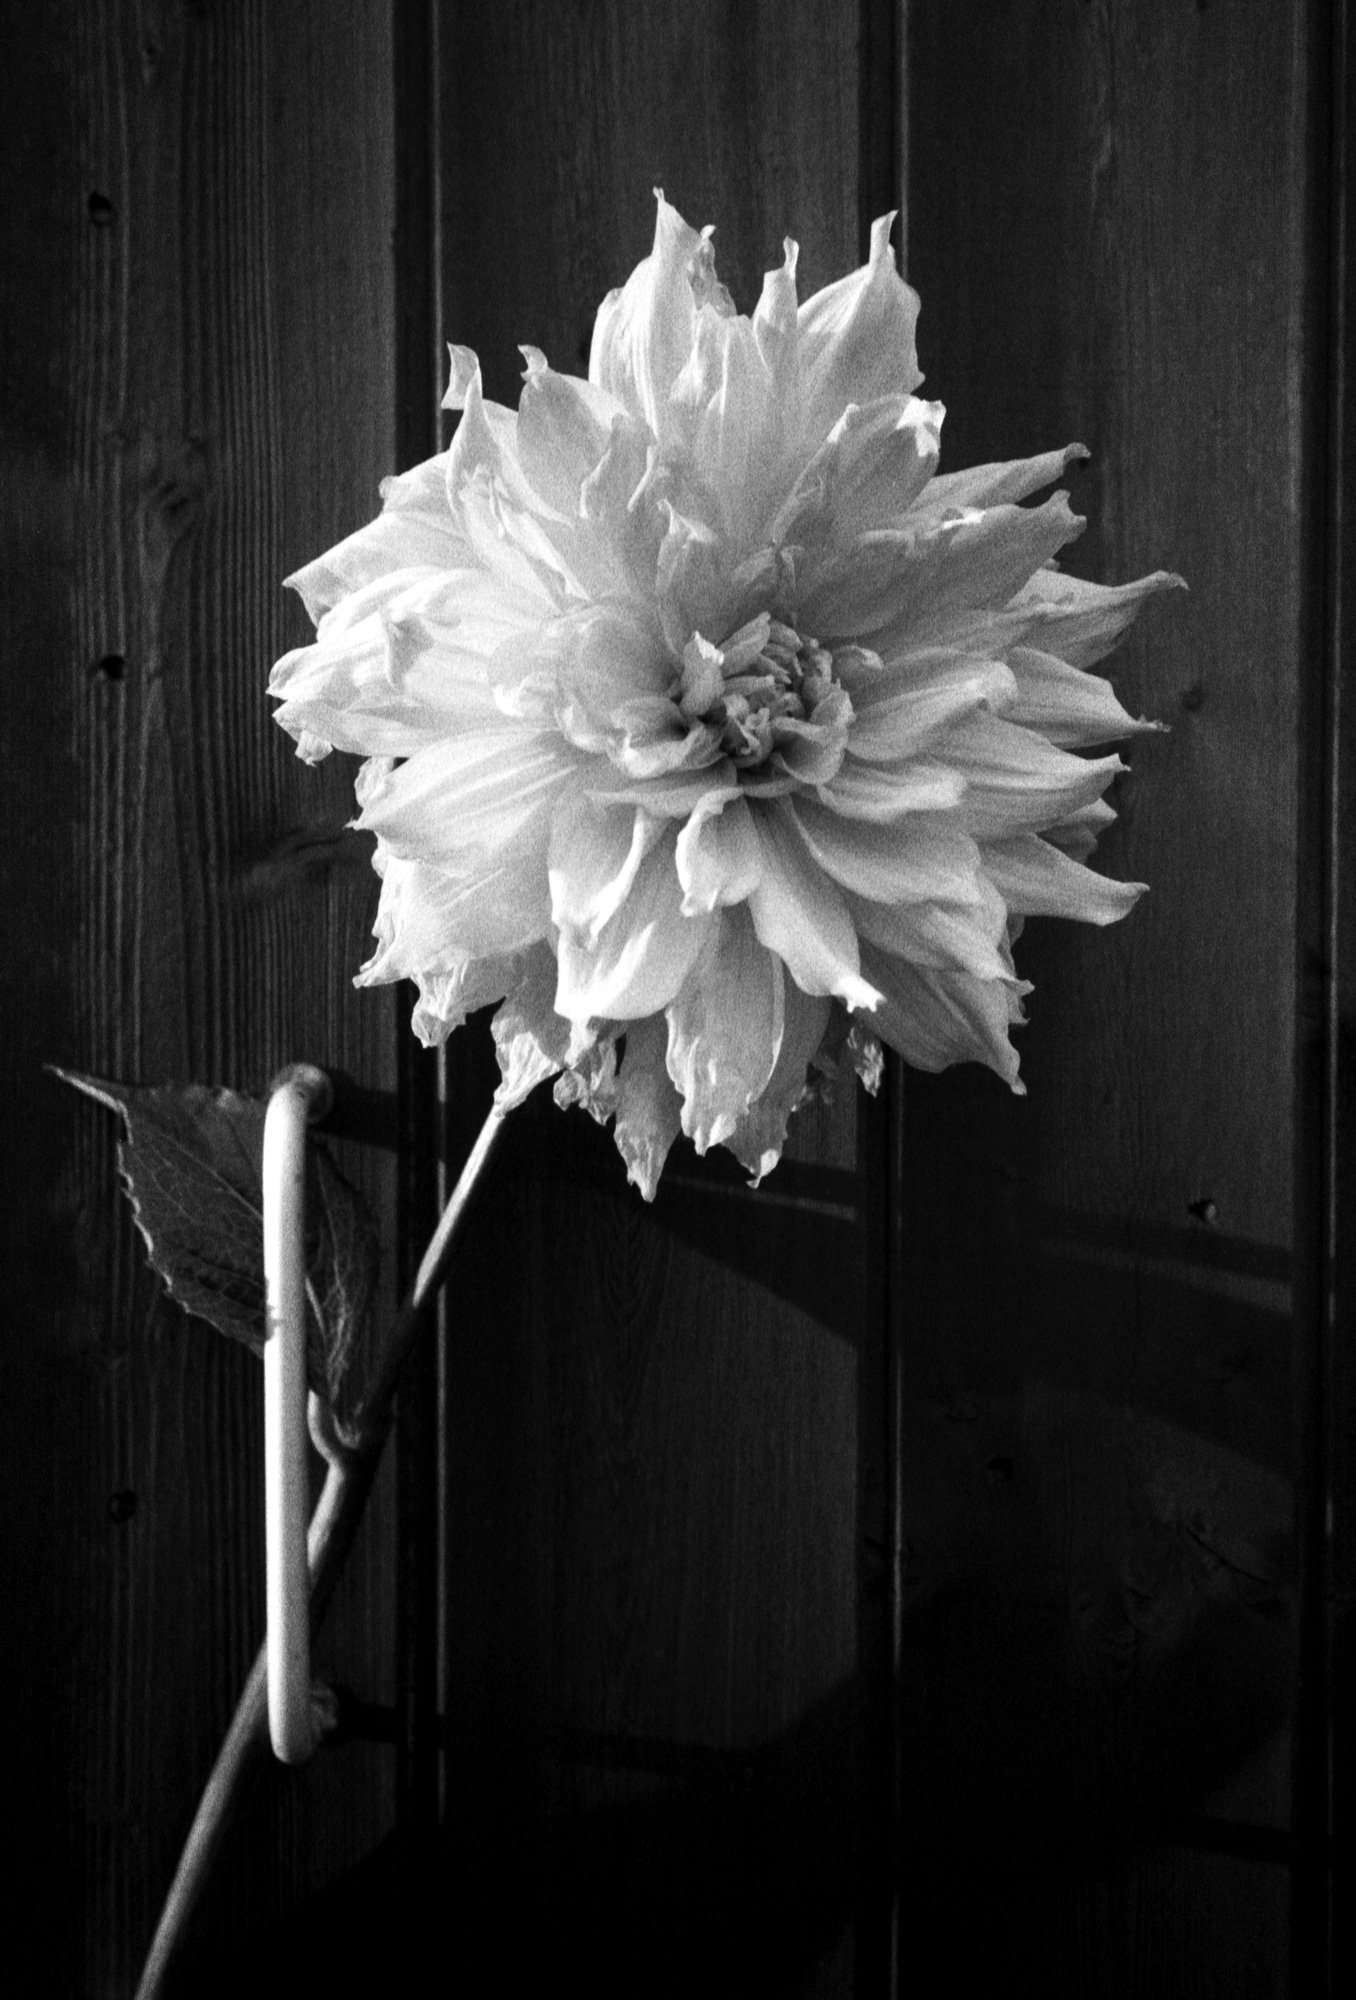 Dahlia, Observations Series, Photography By Ioannis Koussertari